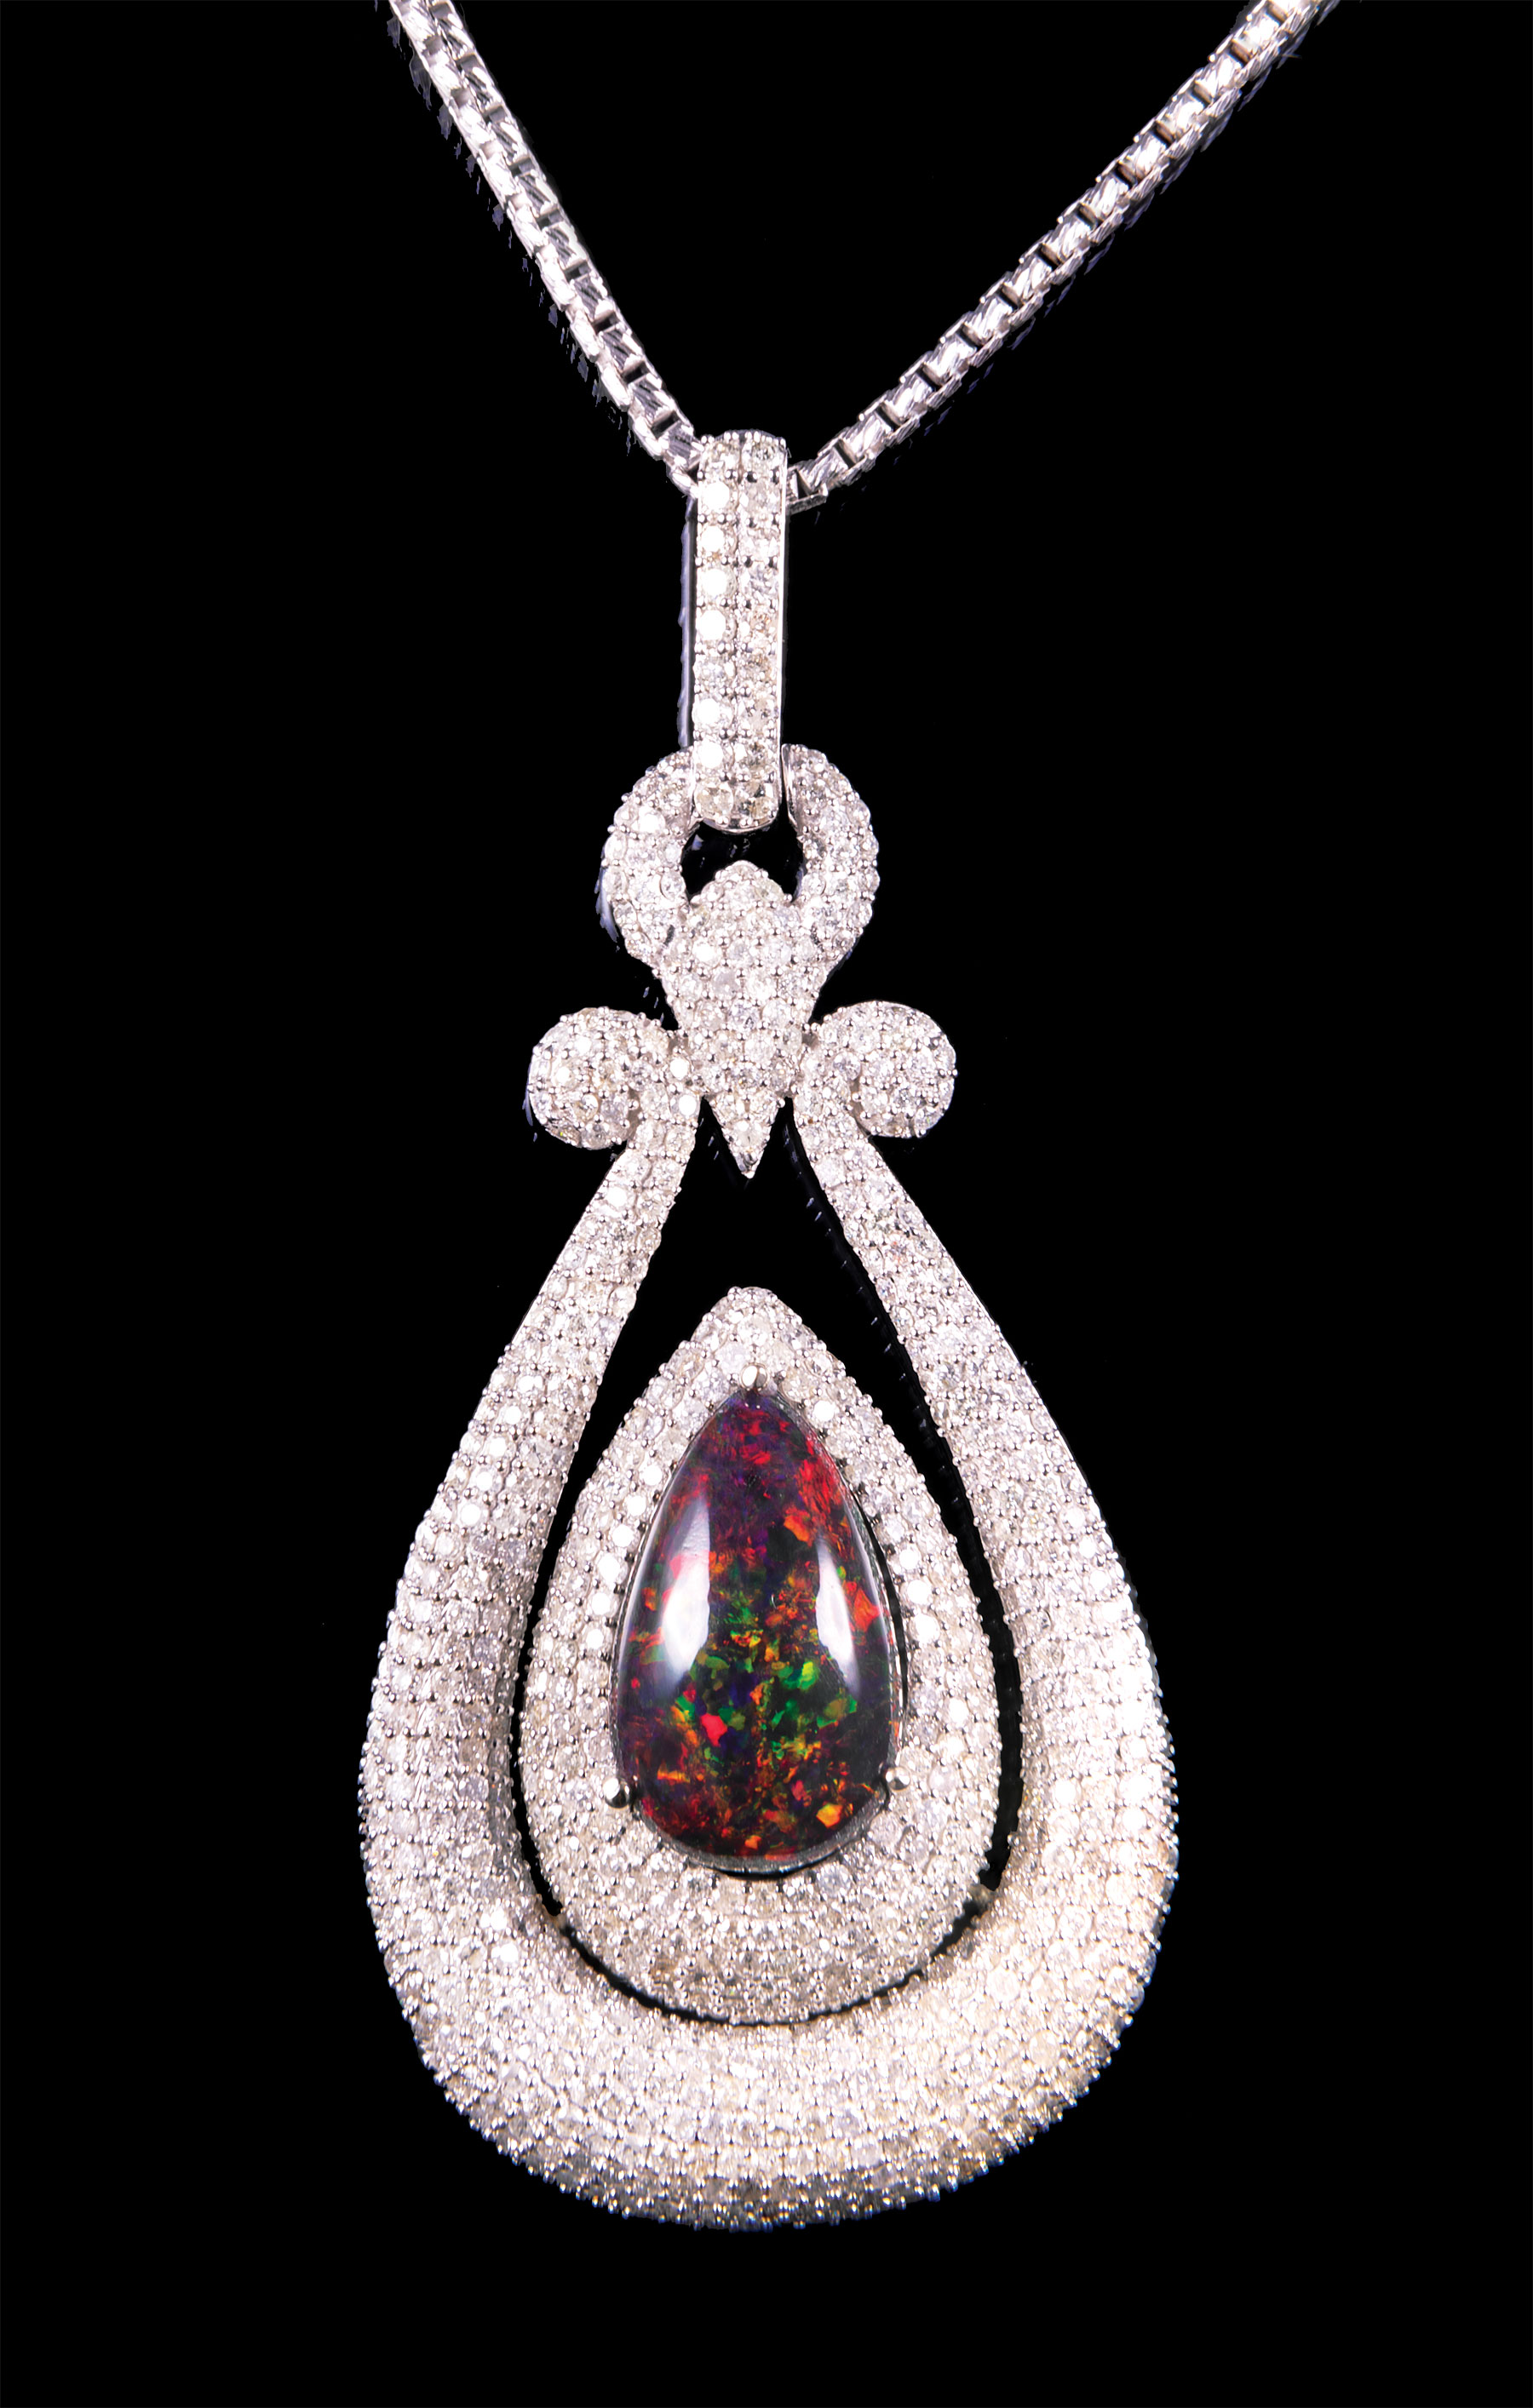 Lot 621 - 14 kt. White Gold, Black Opal and Diamond Pendant with 14 kt. White Gold Chain , prong set pear